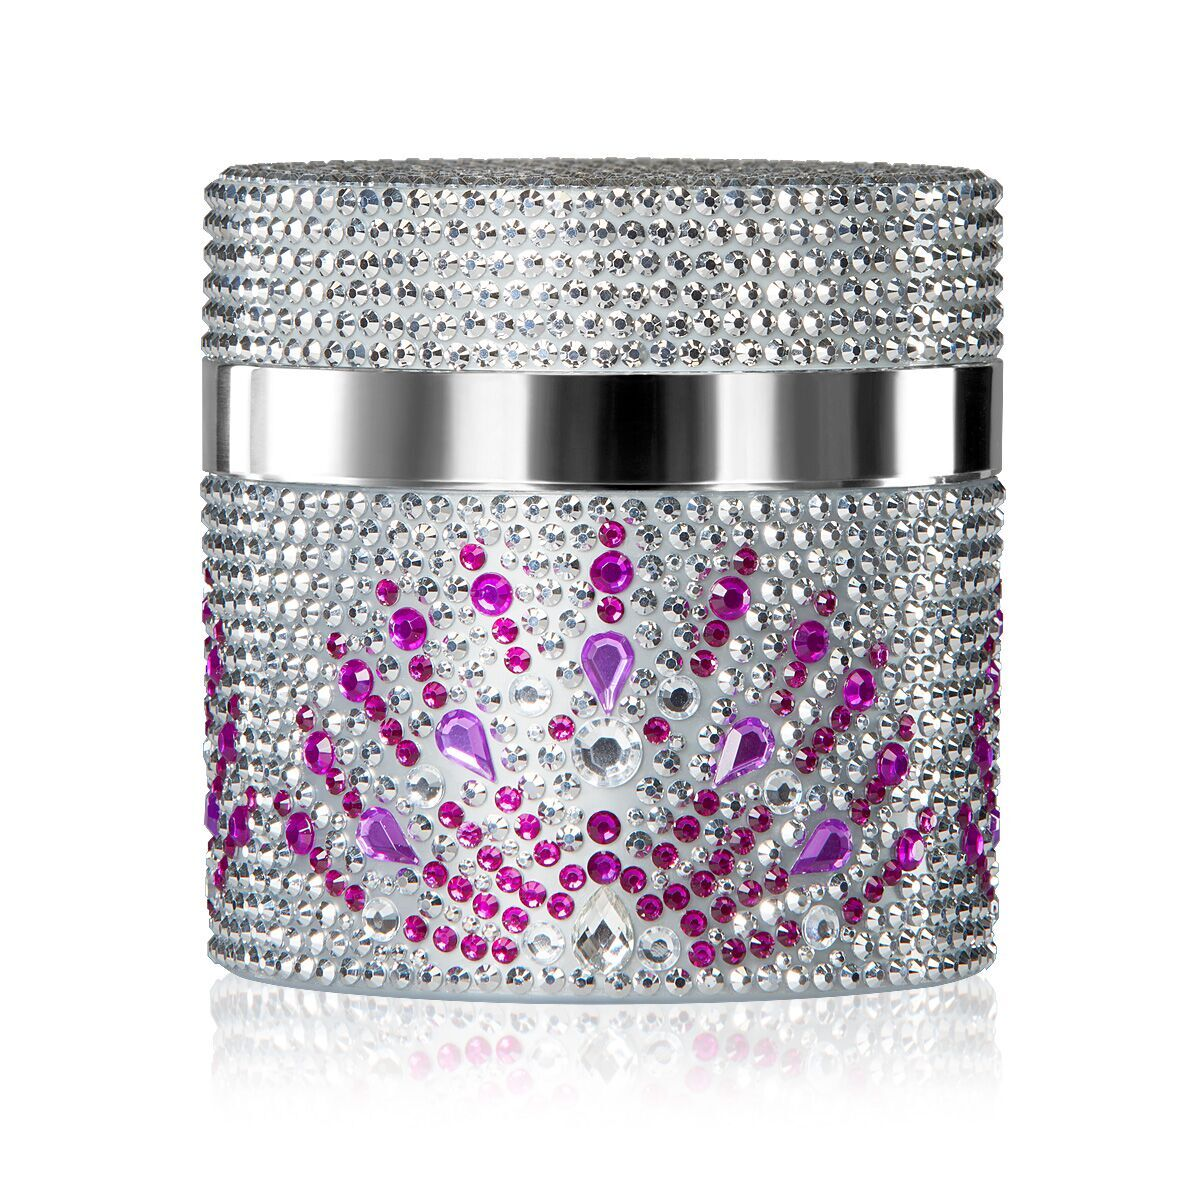 PRAI Beauty Ageless Throat & Decolletage Creme - Jeweled Peacock